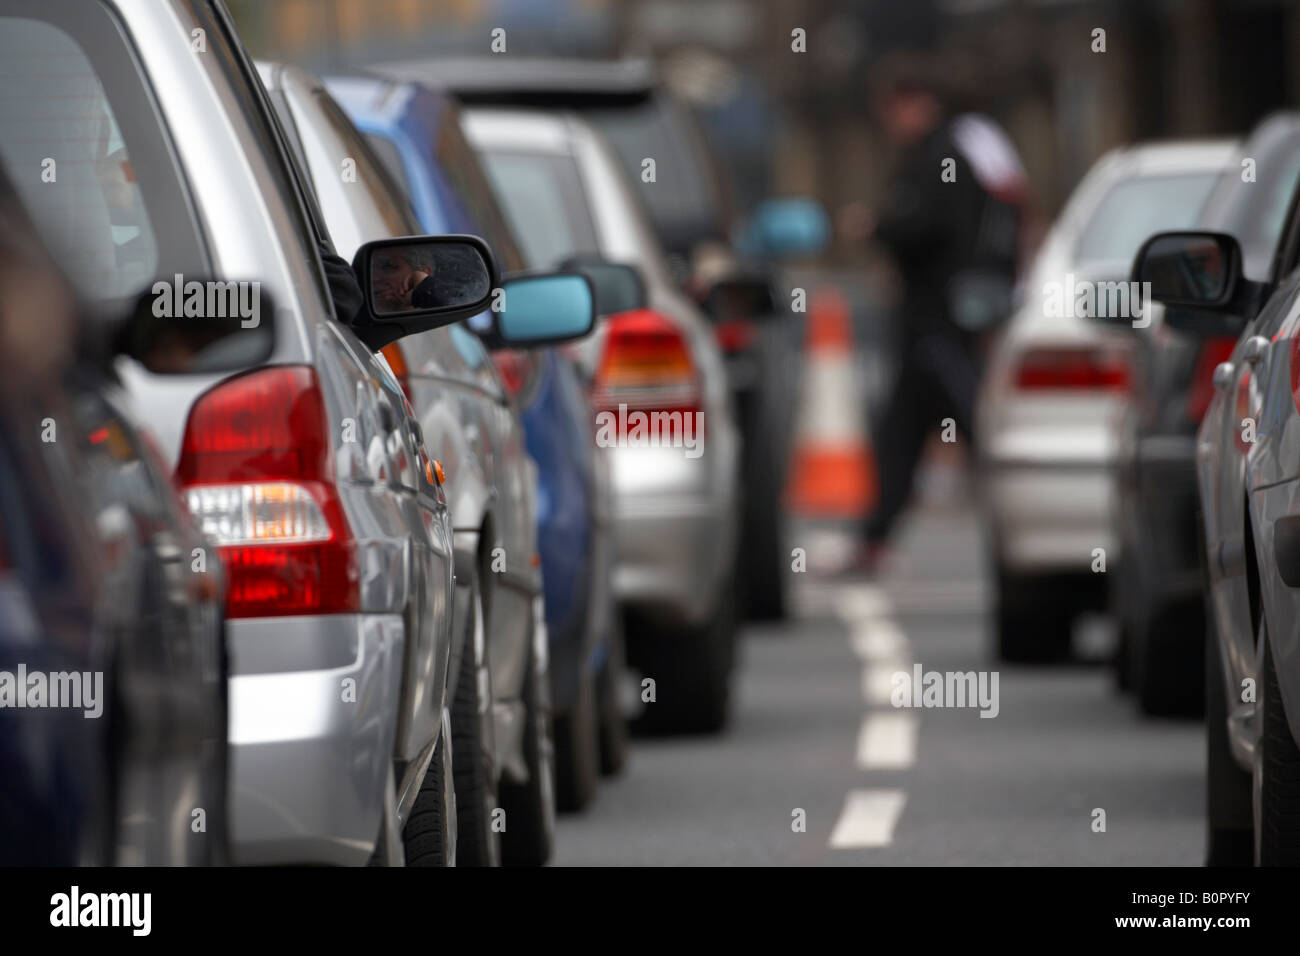 drivers sitting bored in their cars during traffic jam gridlock in belfast city centre - Stock Image